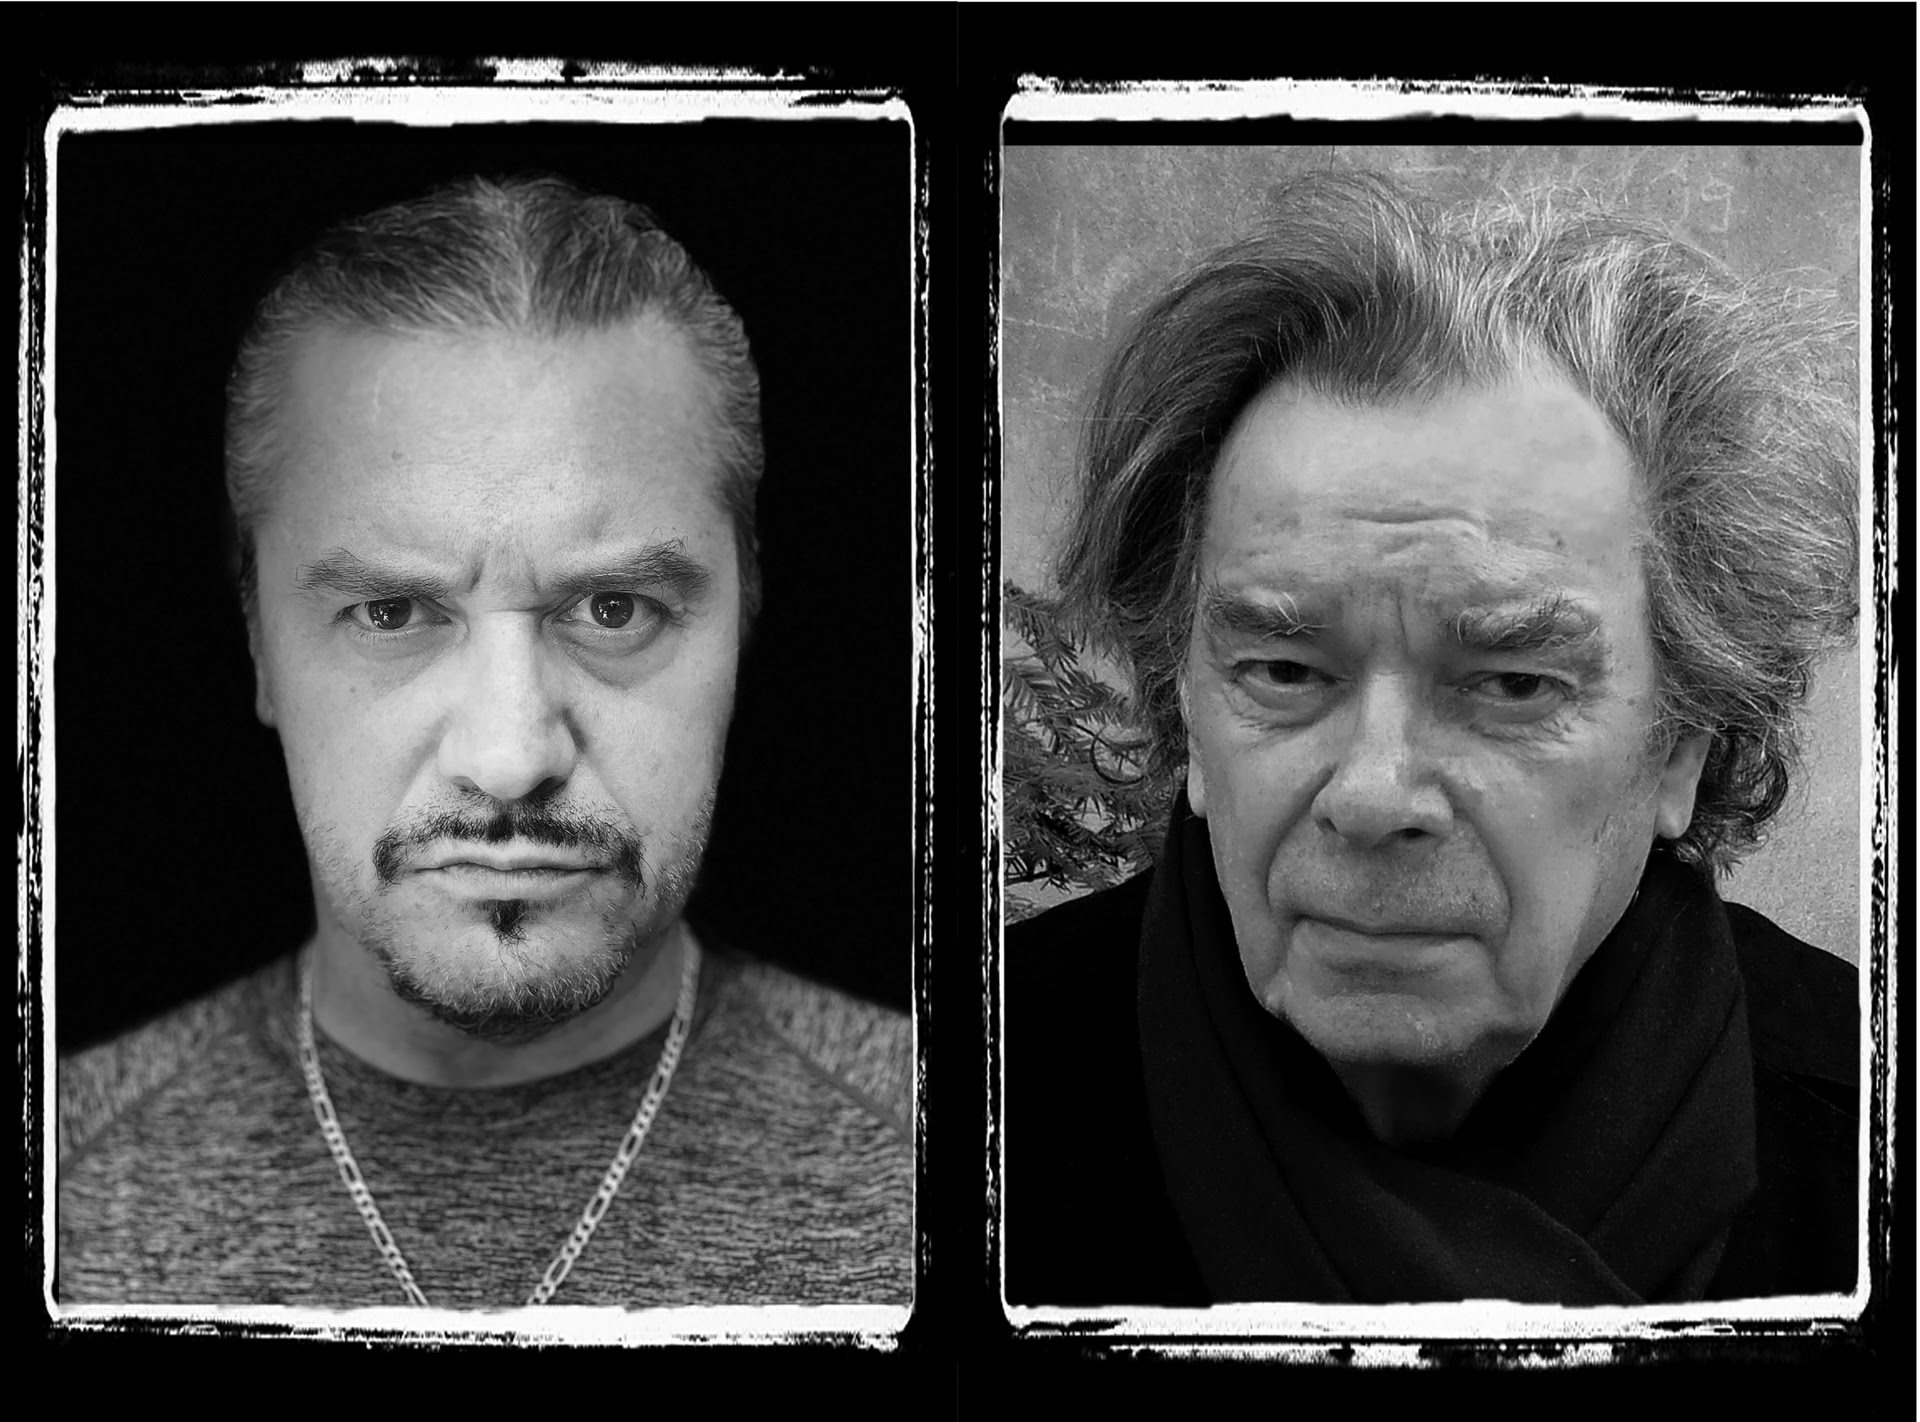 Mike Patton and Jean-Claude Vannier Join Forces to Form Corpse Flower